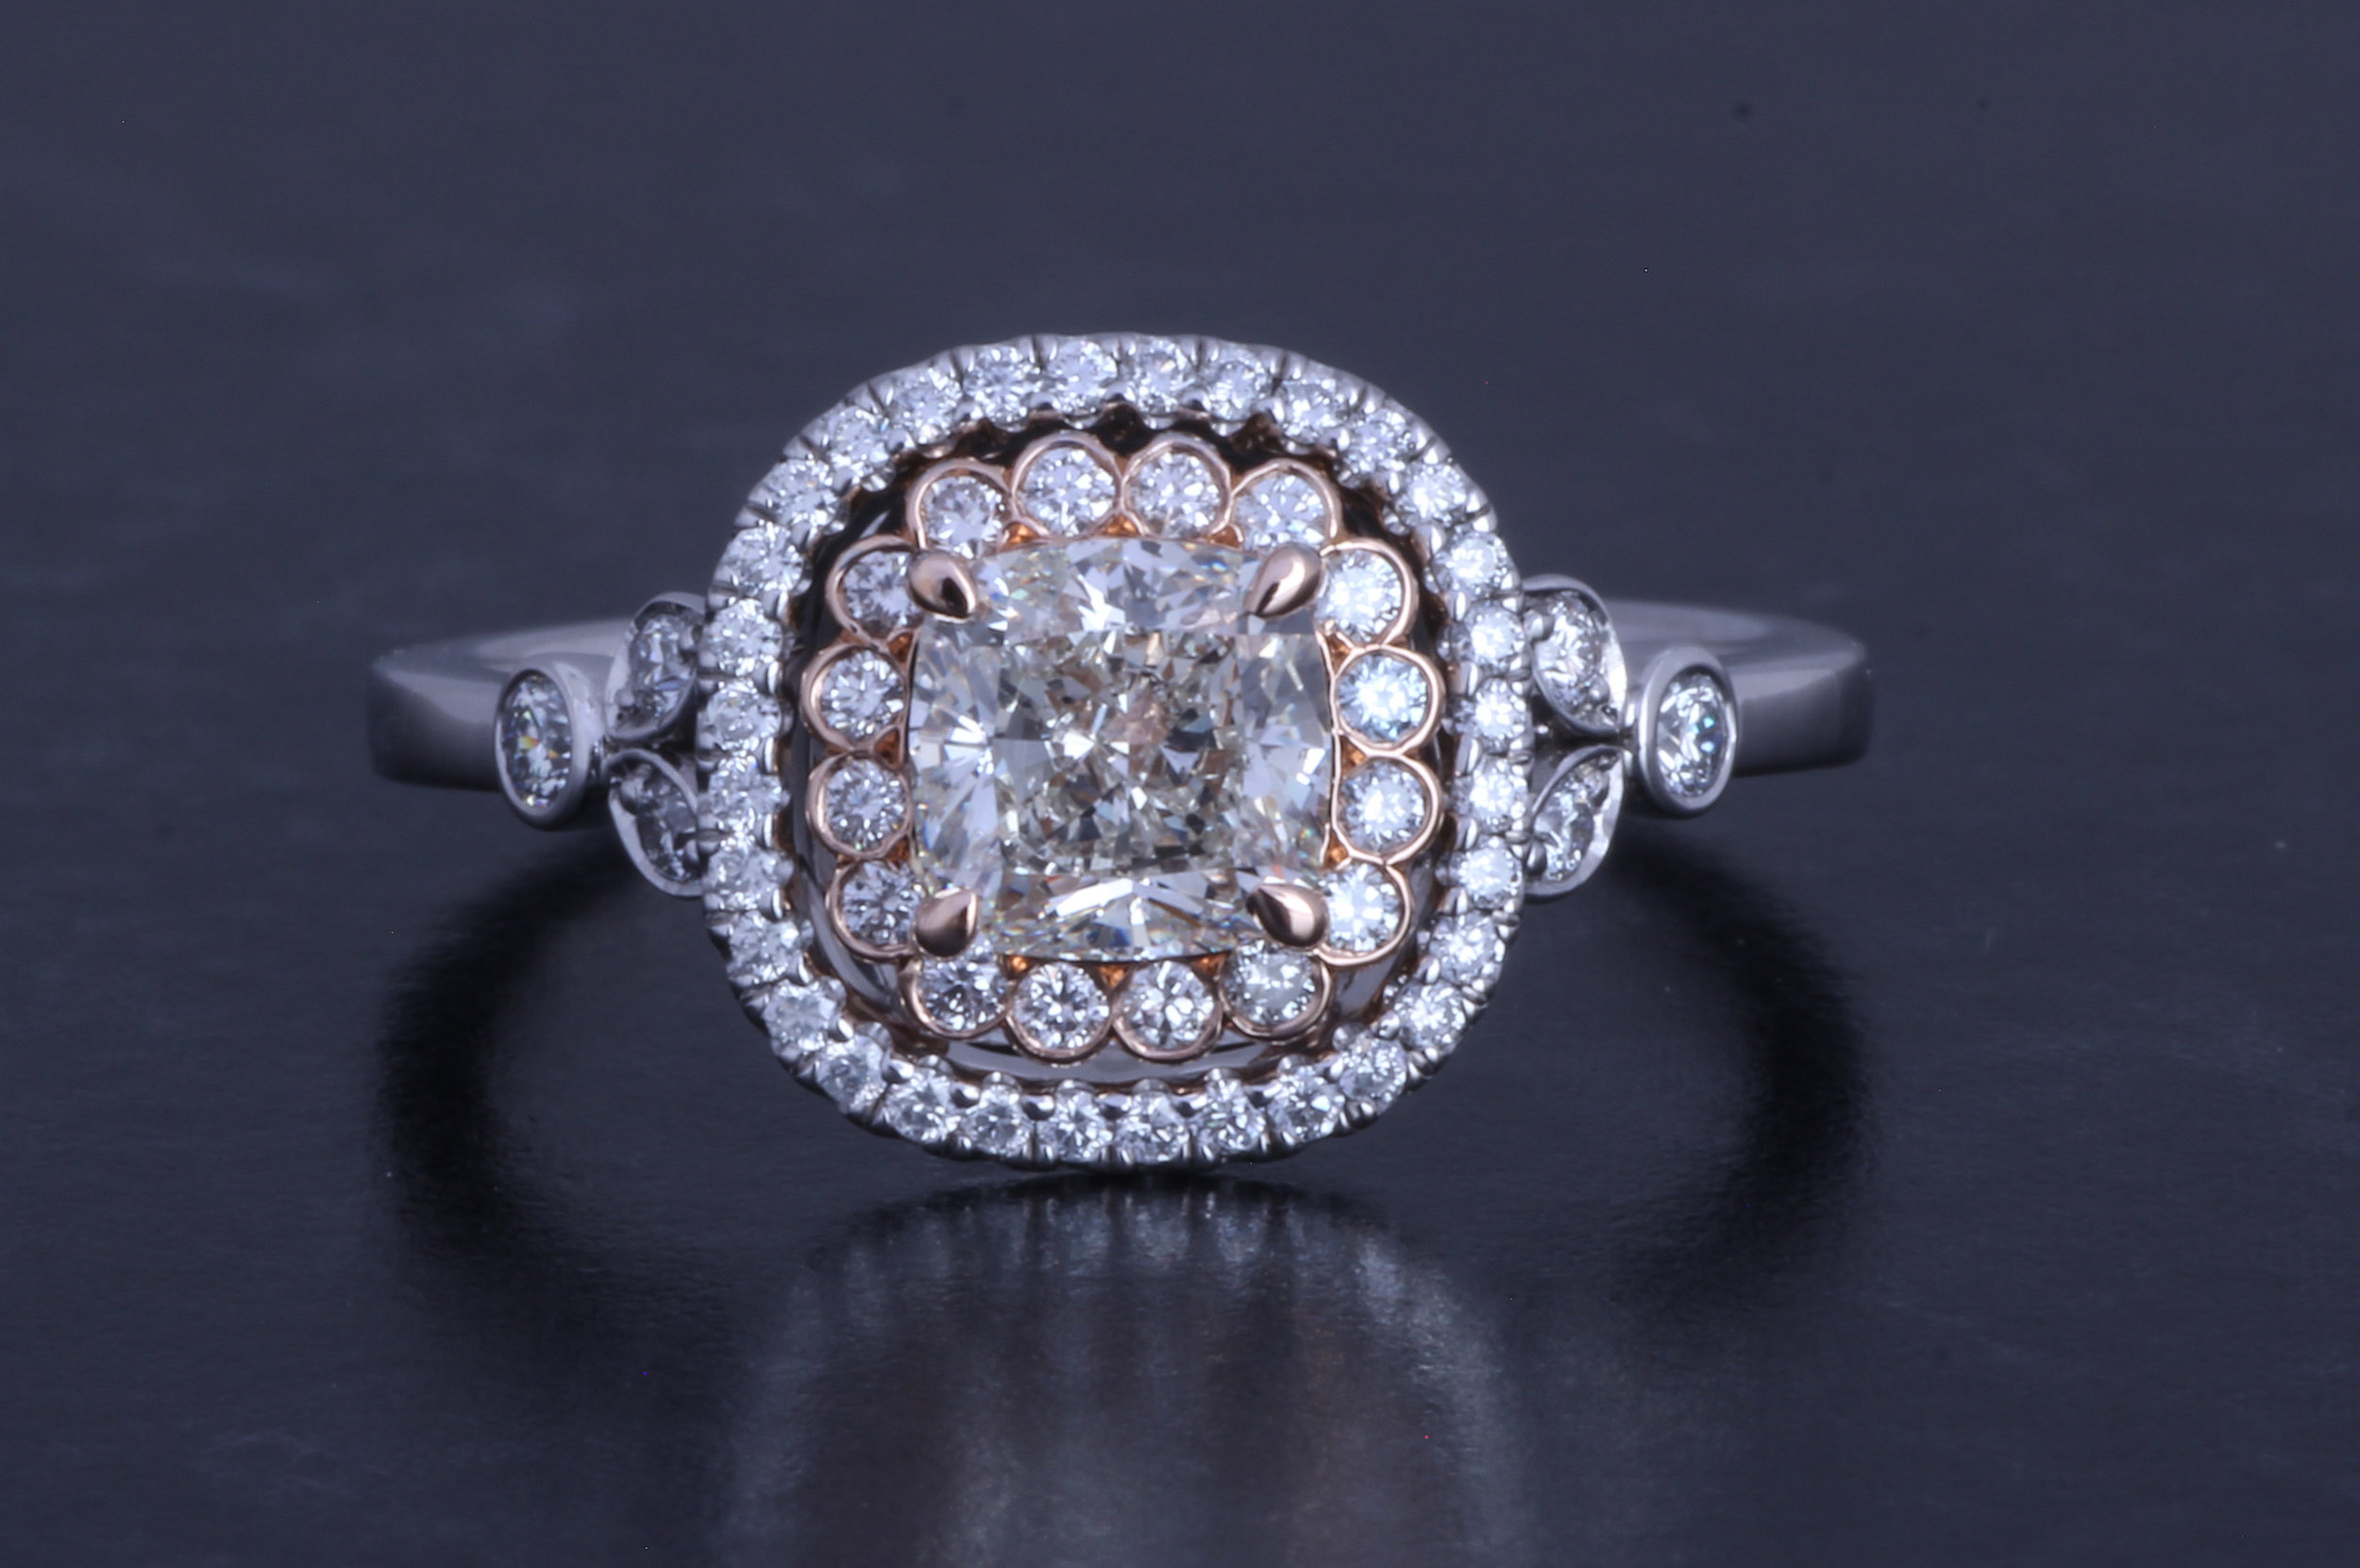 Platinum and rose gold mounted cushion cut and brilliant cut diamond cluster ring. Made in Chichester, England.